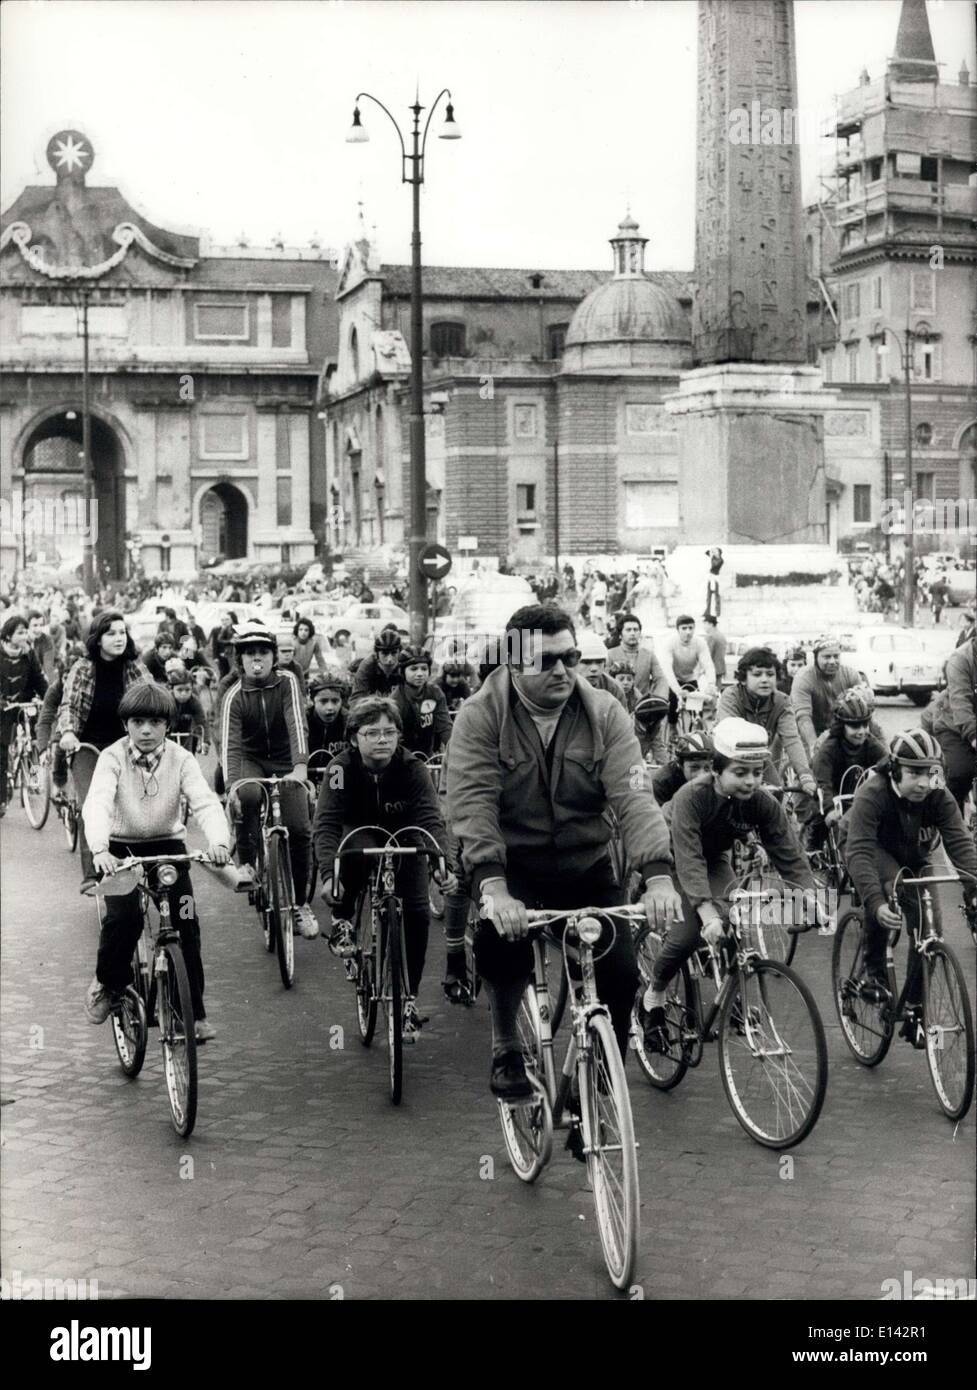 Apr. 04, 2012 - Bicycle march though Rome organized by 'Kronos 1991, to protest against - Stock Image